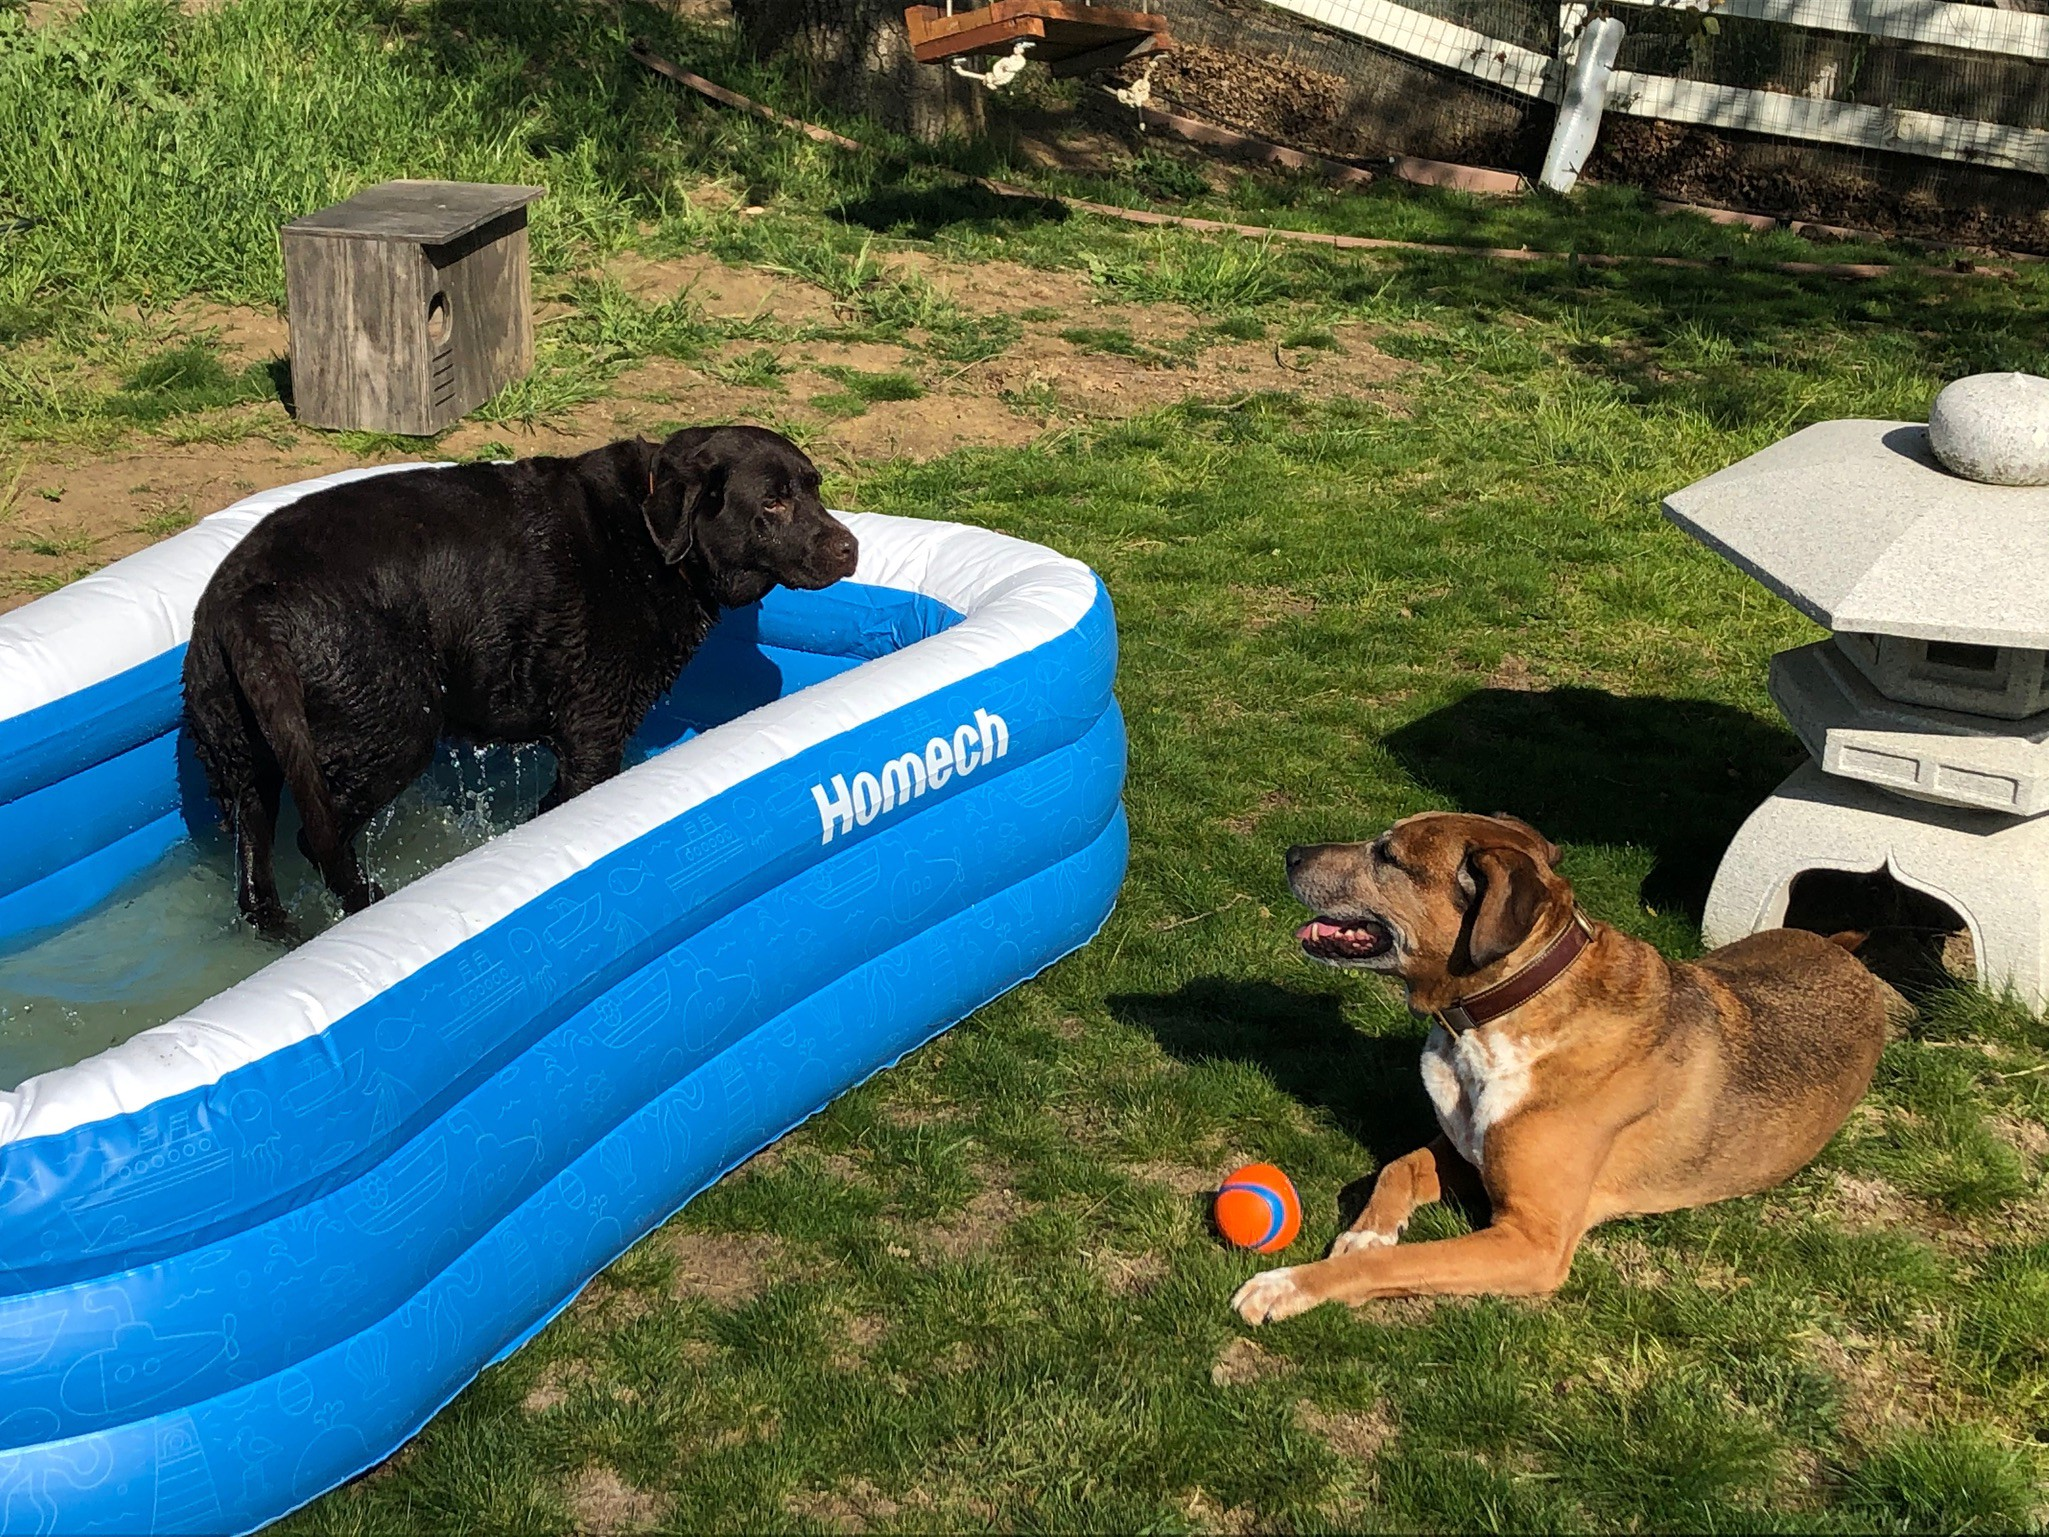 One big dog is inside an inflatable pool while the other dog looks at him